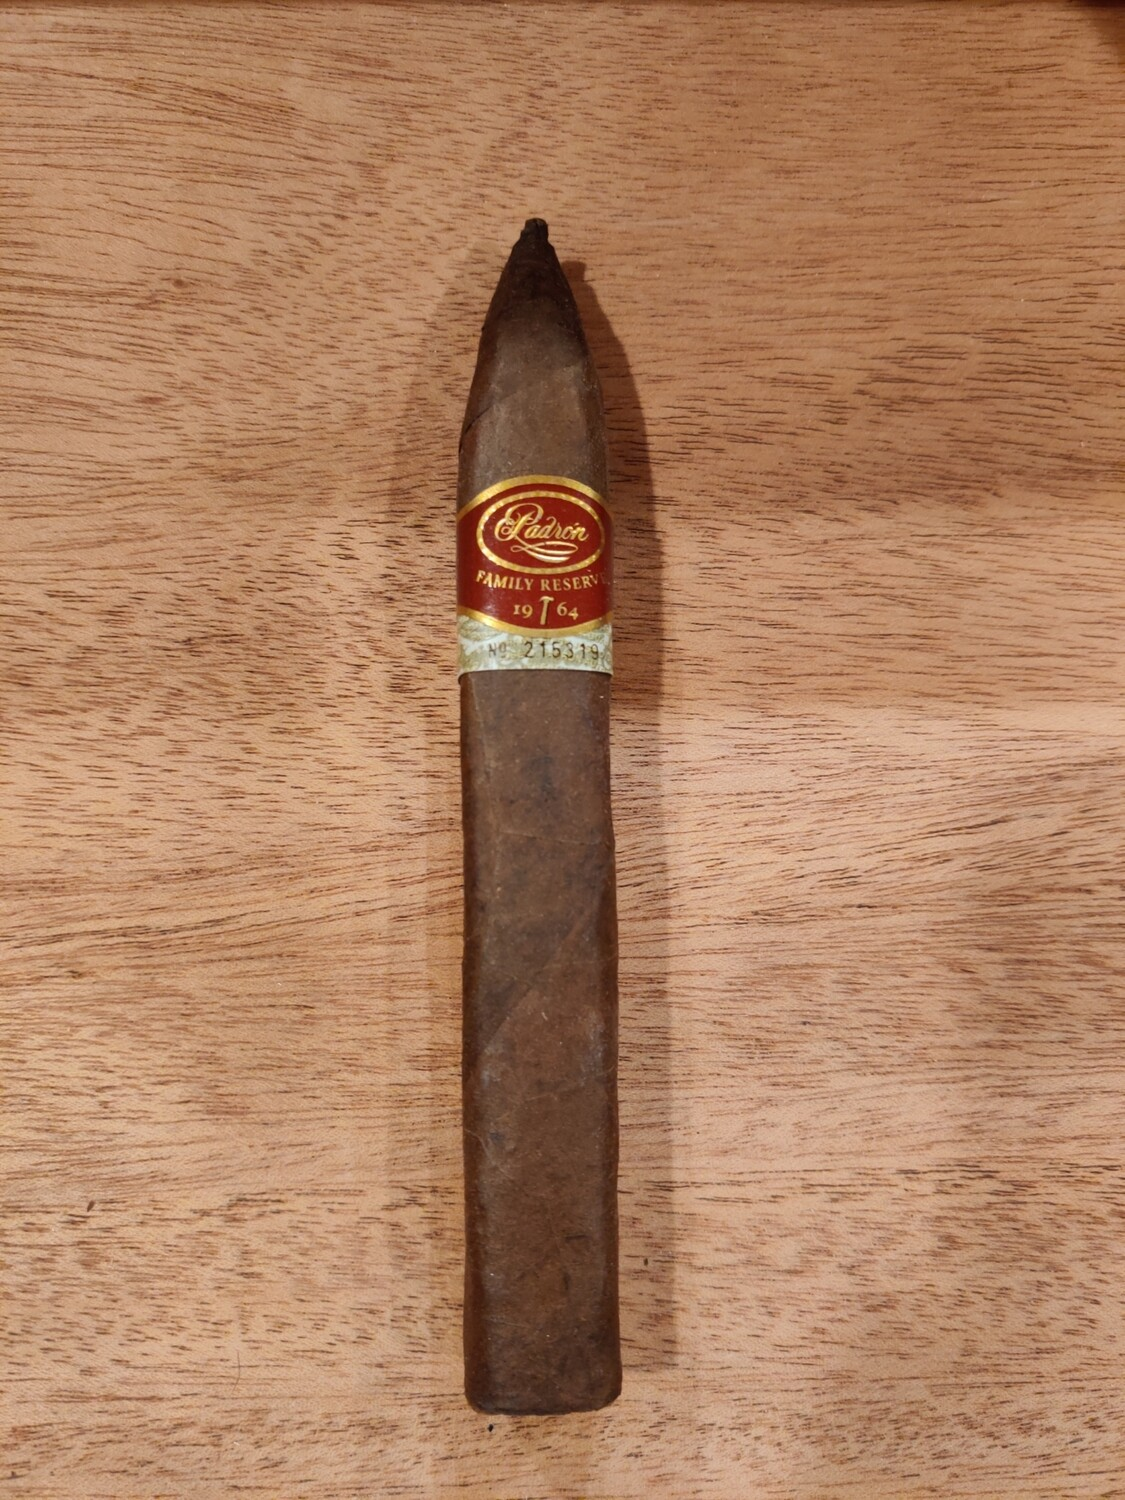 Padron Family Reserve 44 Maduro Cigar